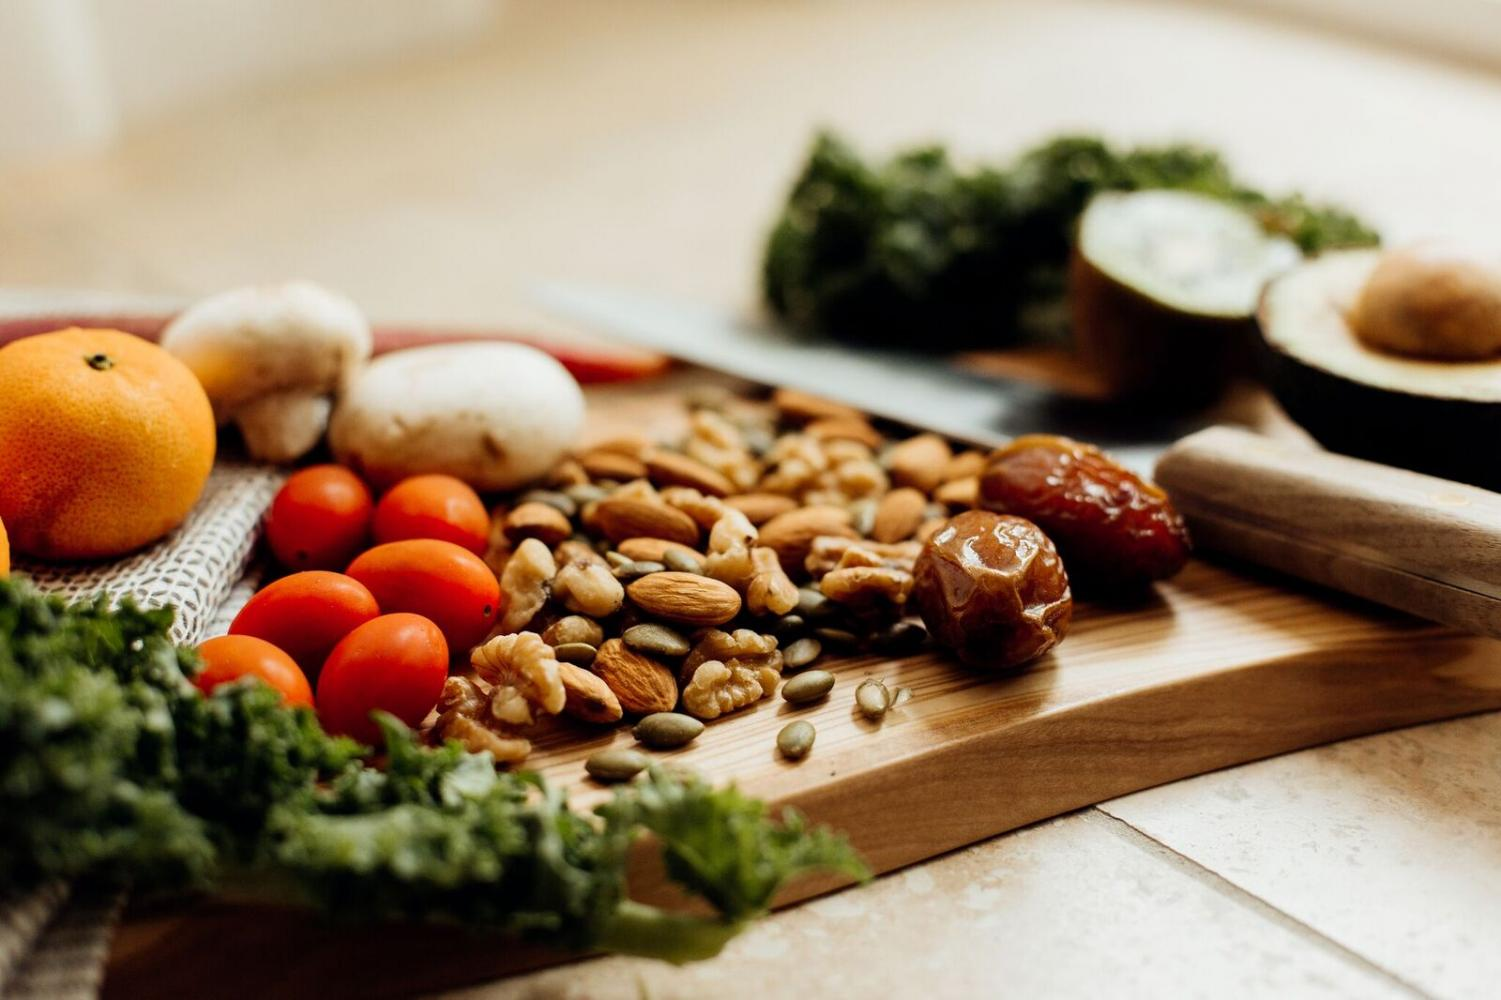 Nuts, seeds, fruits, and leafy vegetables are versatile staples to  a plant-based lifestyle.